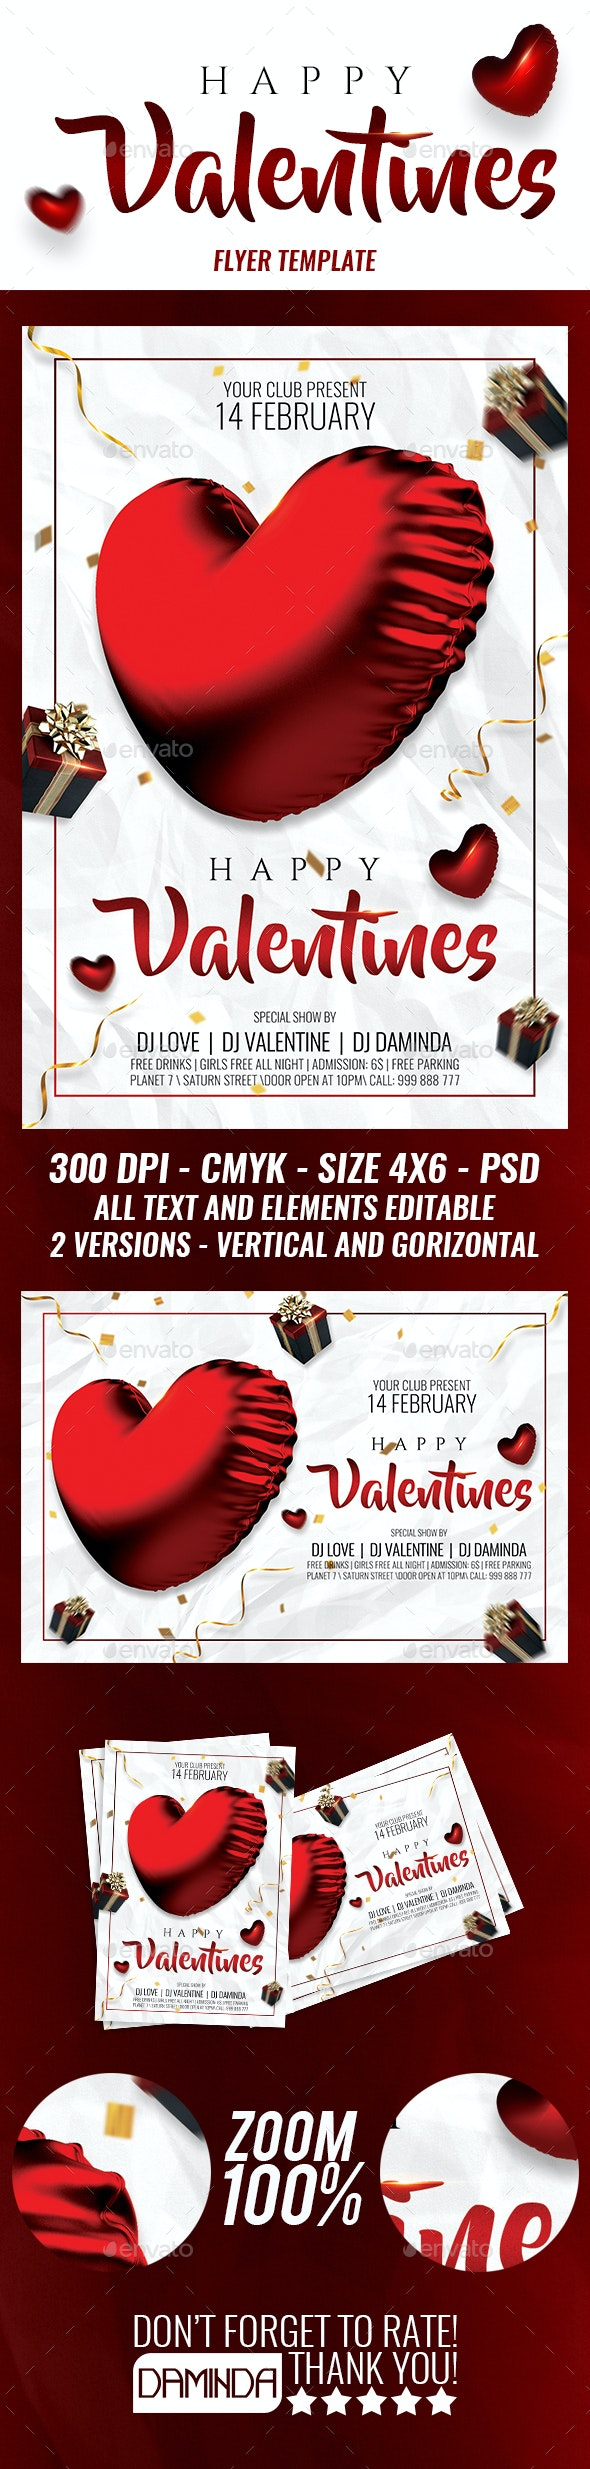 Happy Valentines 2019 Flyer Template (2 versions) - Clubs & Parties Events